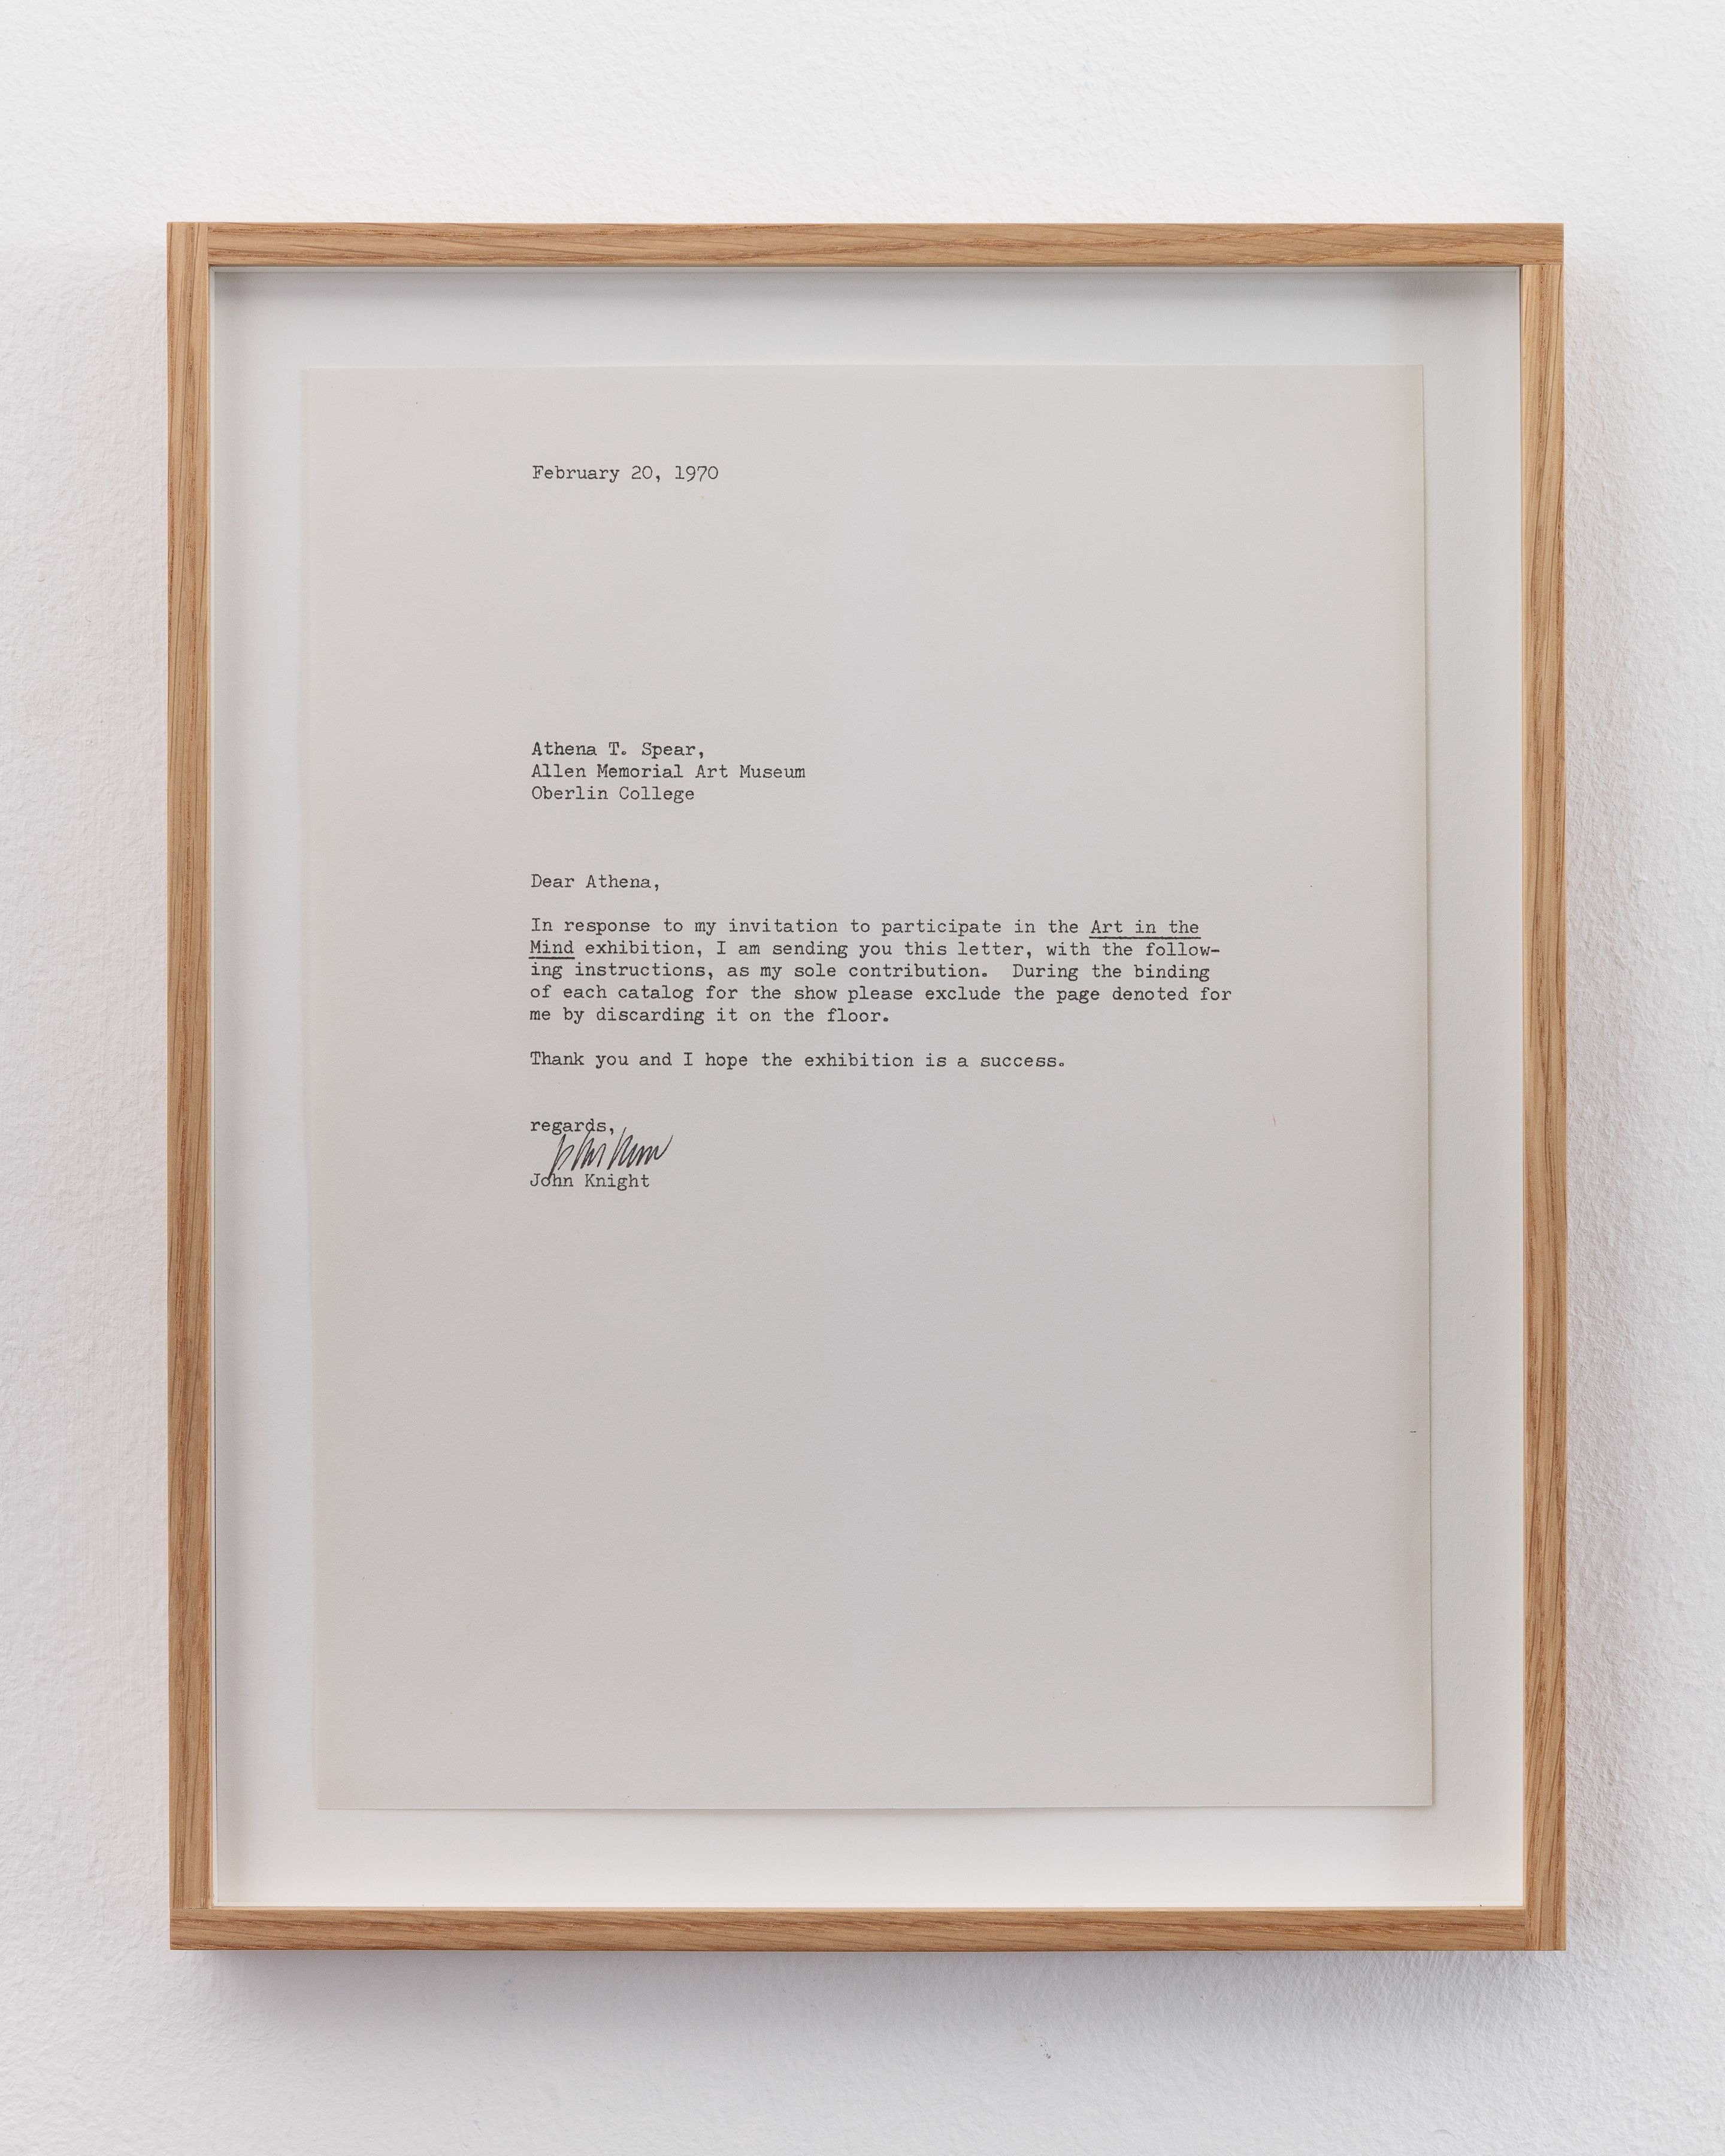 John Knight  Proposal to the curators of the exhibition 'Art In The Mind', 1970  Ink on paper  8 ½ x 11 inches (21.59 x 27.94 cm)